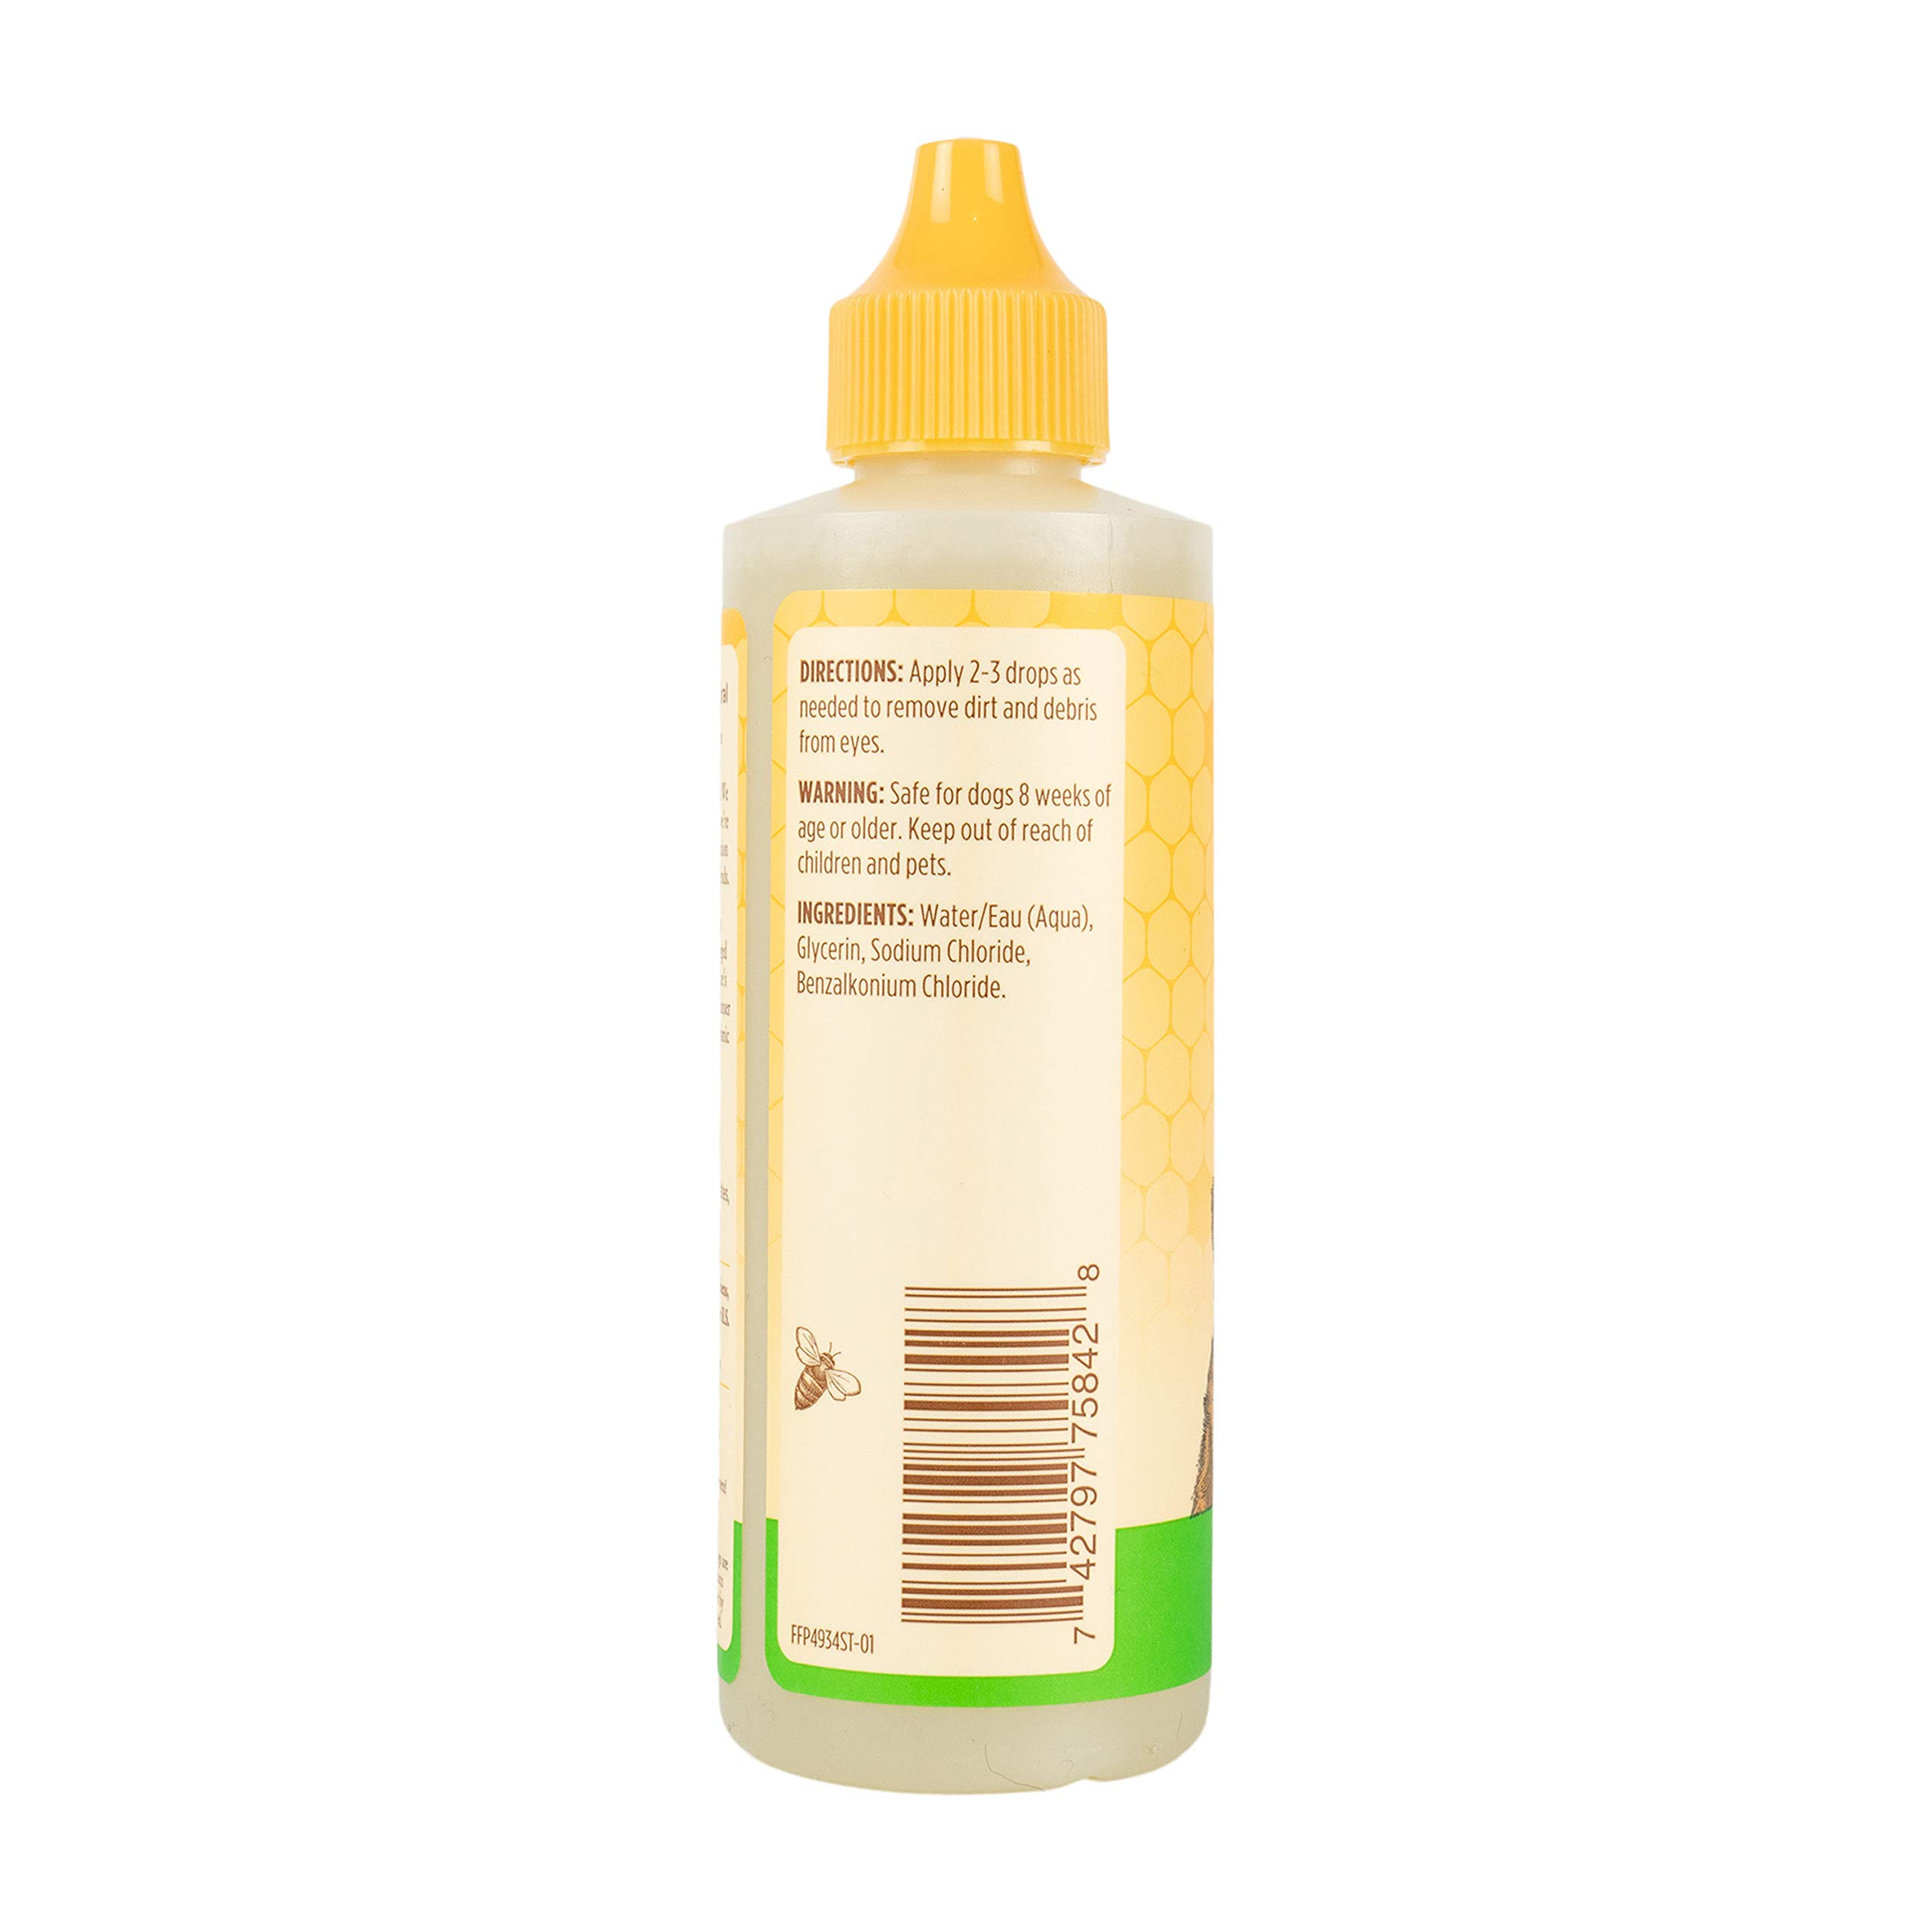 Burt's Bees for Dogs Natural Eye Wash with Saline Solution | Eye Wash Drops for Dogs Or Puppies, 4oz